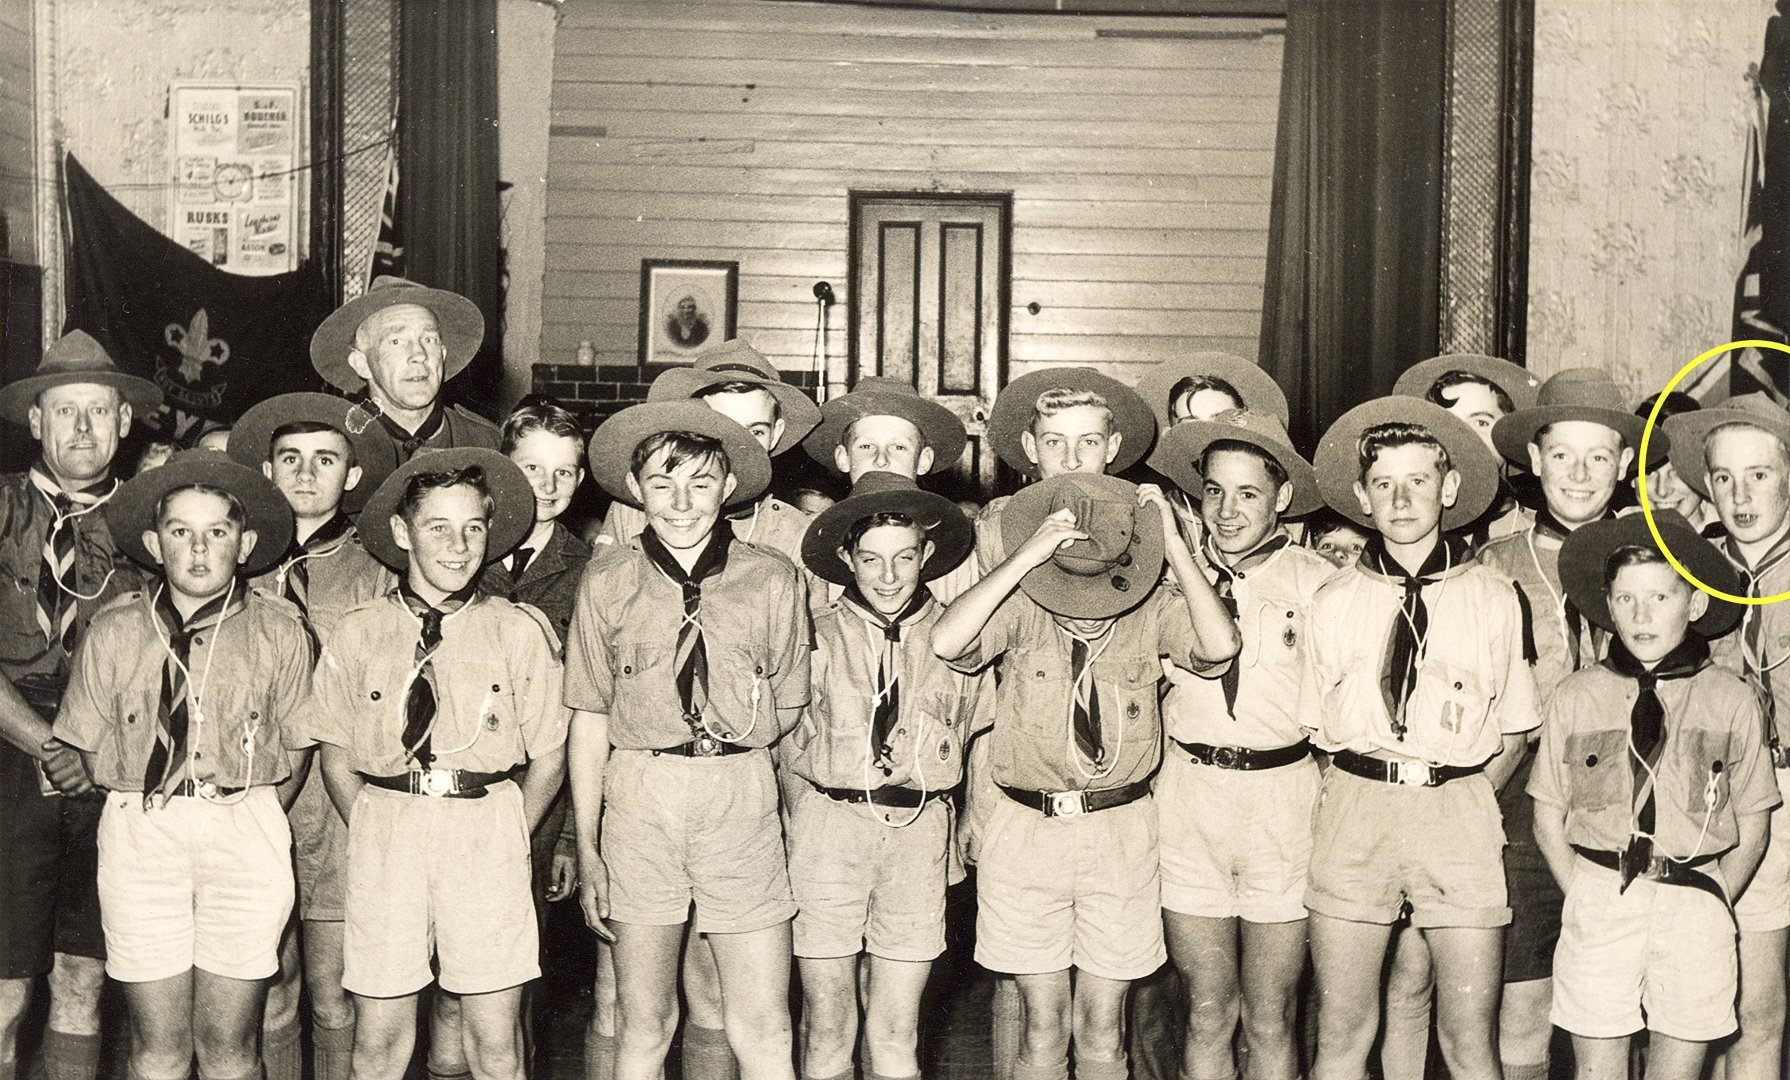 Bruce with the 1st Heyfield Scouts in the 1950's.  The Scout Leader second from the left is his father, James Chester Draper